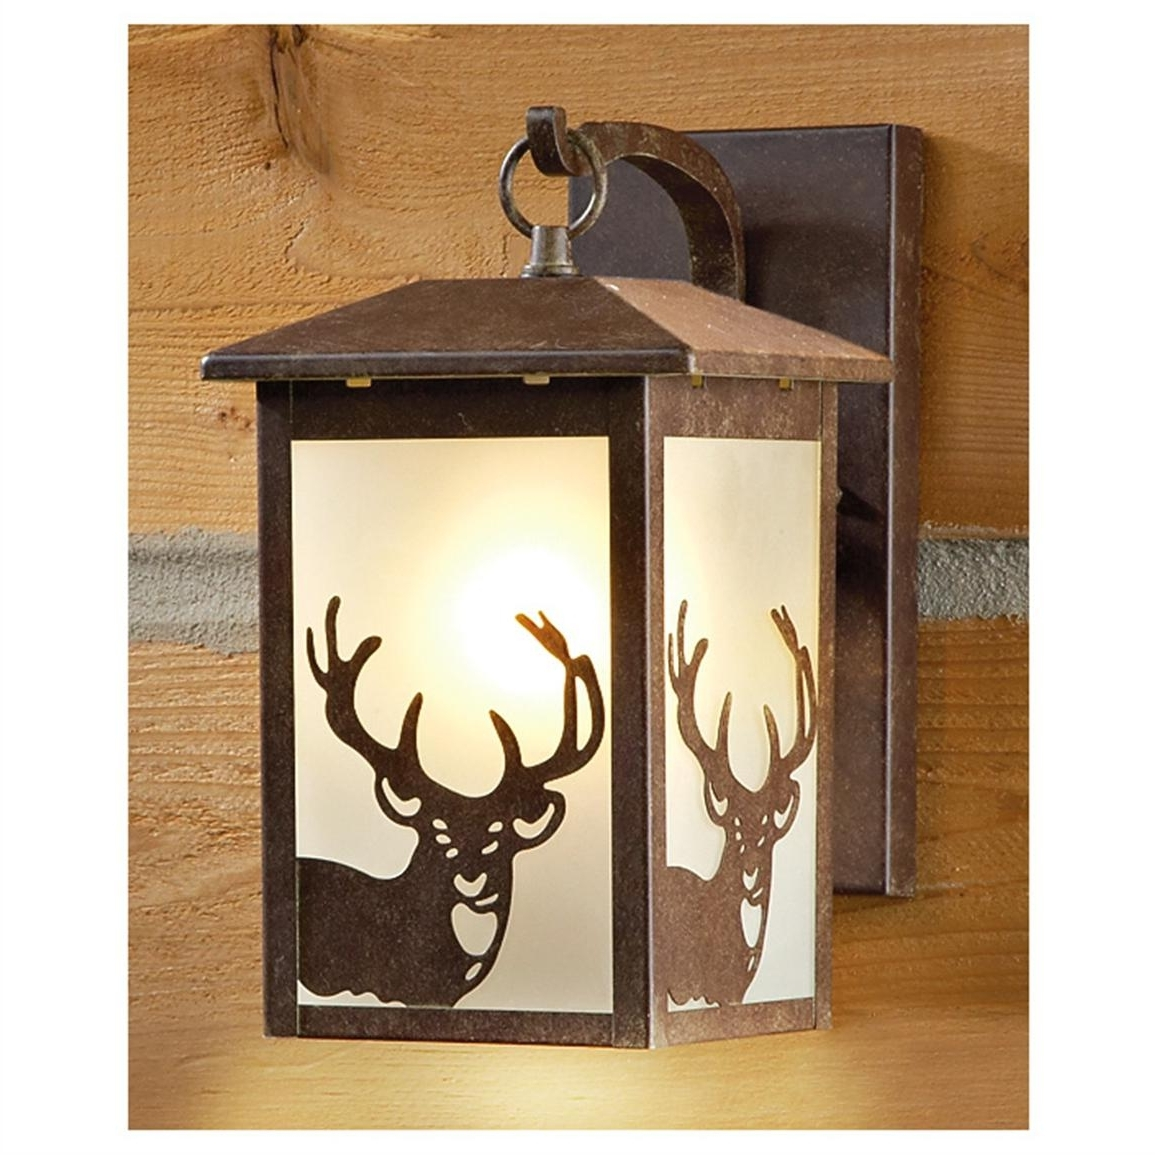 Most Recent Outdoor Lanterns For Tables For Rustic Outdoor Hanging Lamps Table Landscape Lighting Wall Mounted (View 13 of 20)